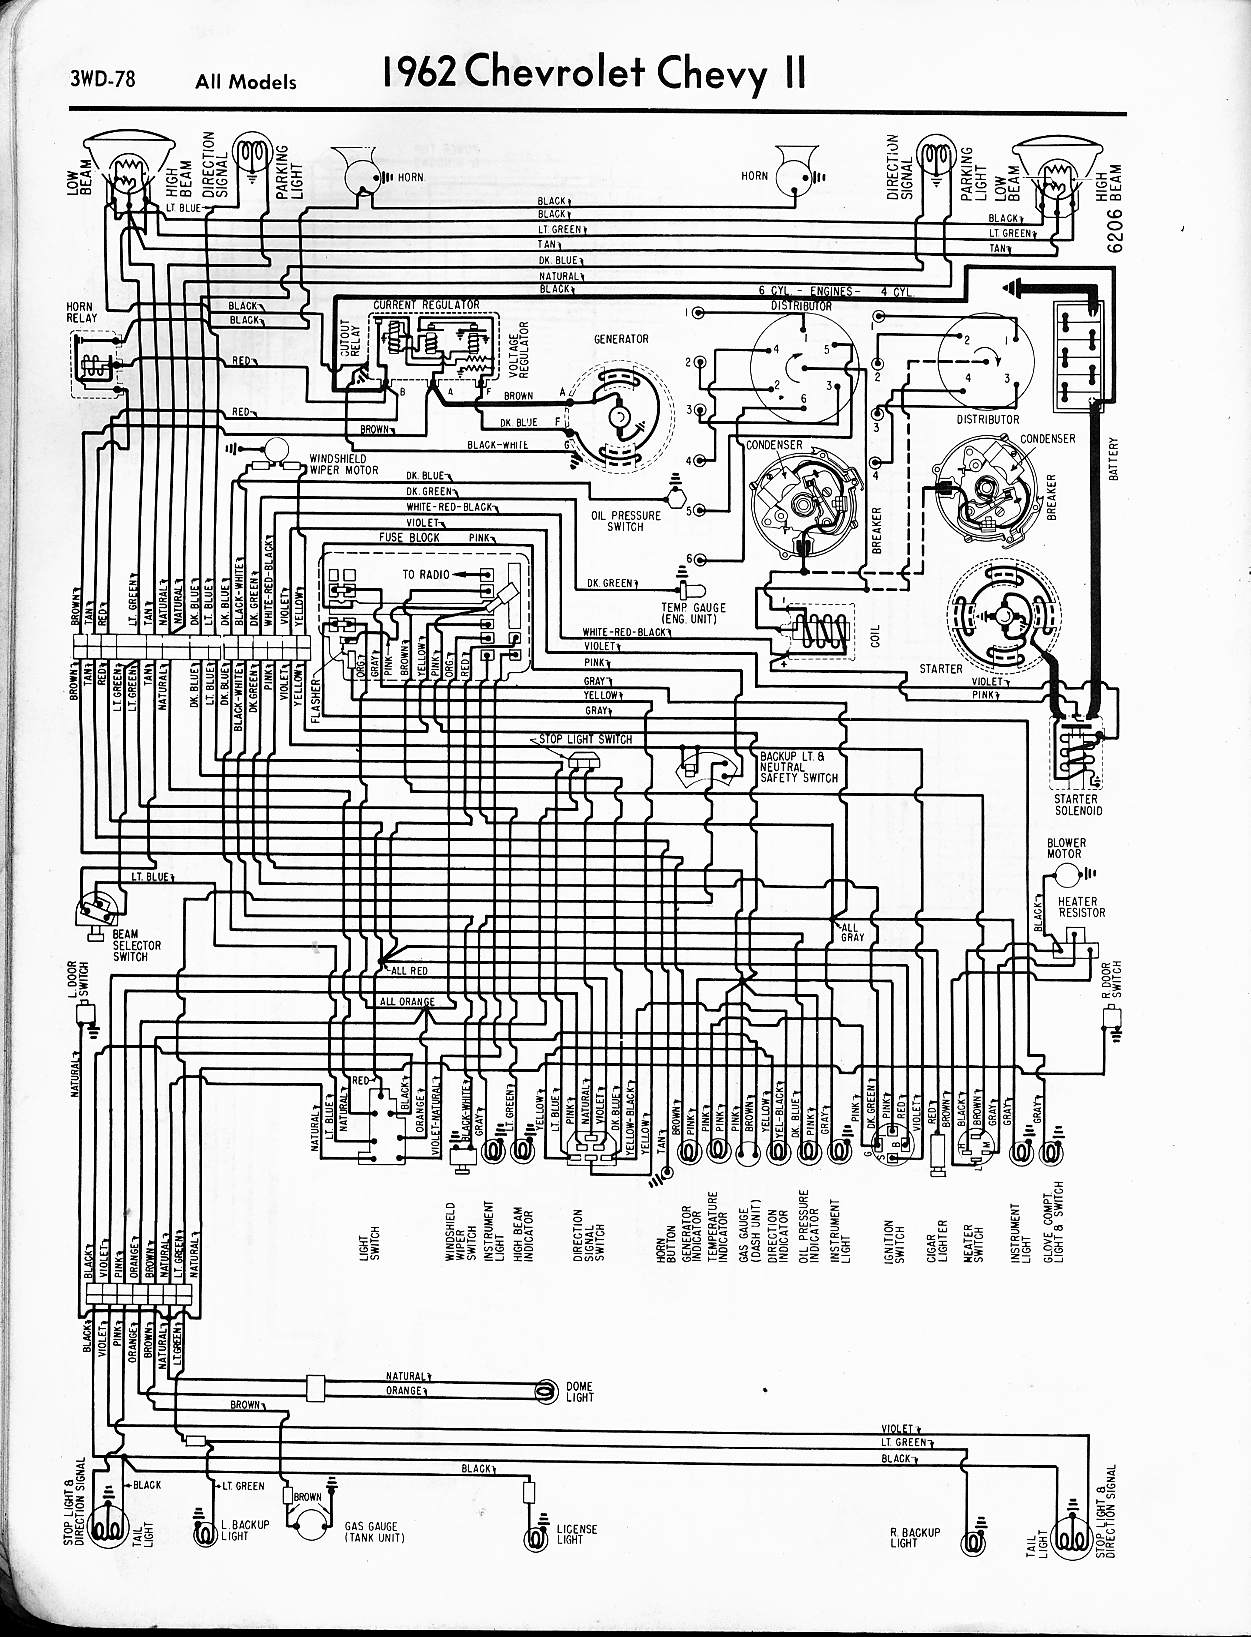 wiring diagram for 1967 chevy impala wiring diagram database 1971 Nova Wiring Schematic electrical wiring diagrams 67 impala solution of your wiring 1964 impala ss wiring harness diagram 67